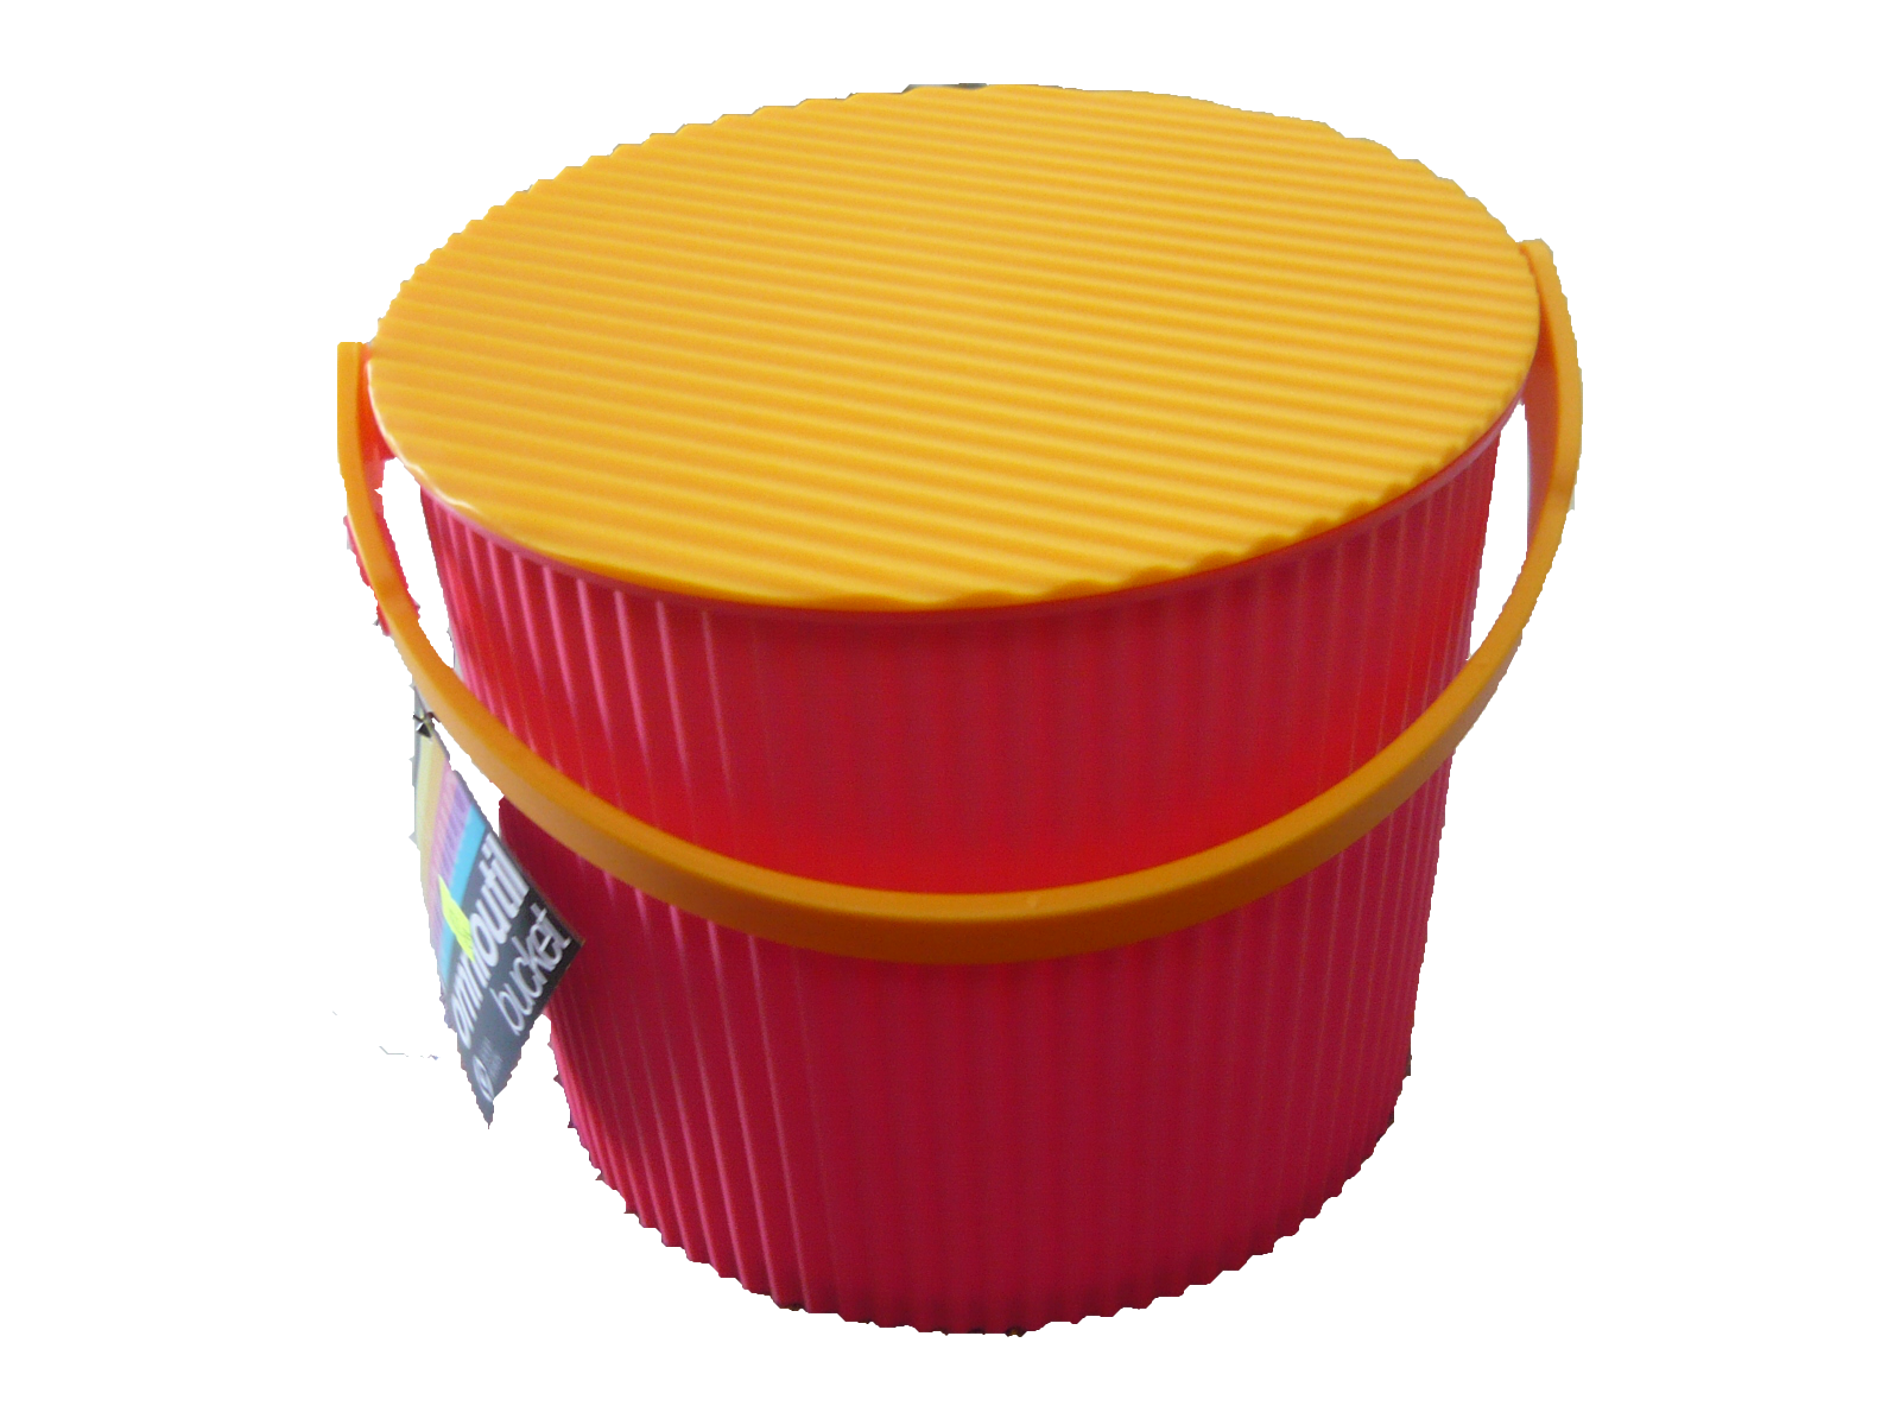 Omnioutil Bucket (small) - Good Design